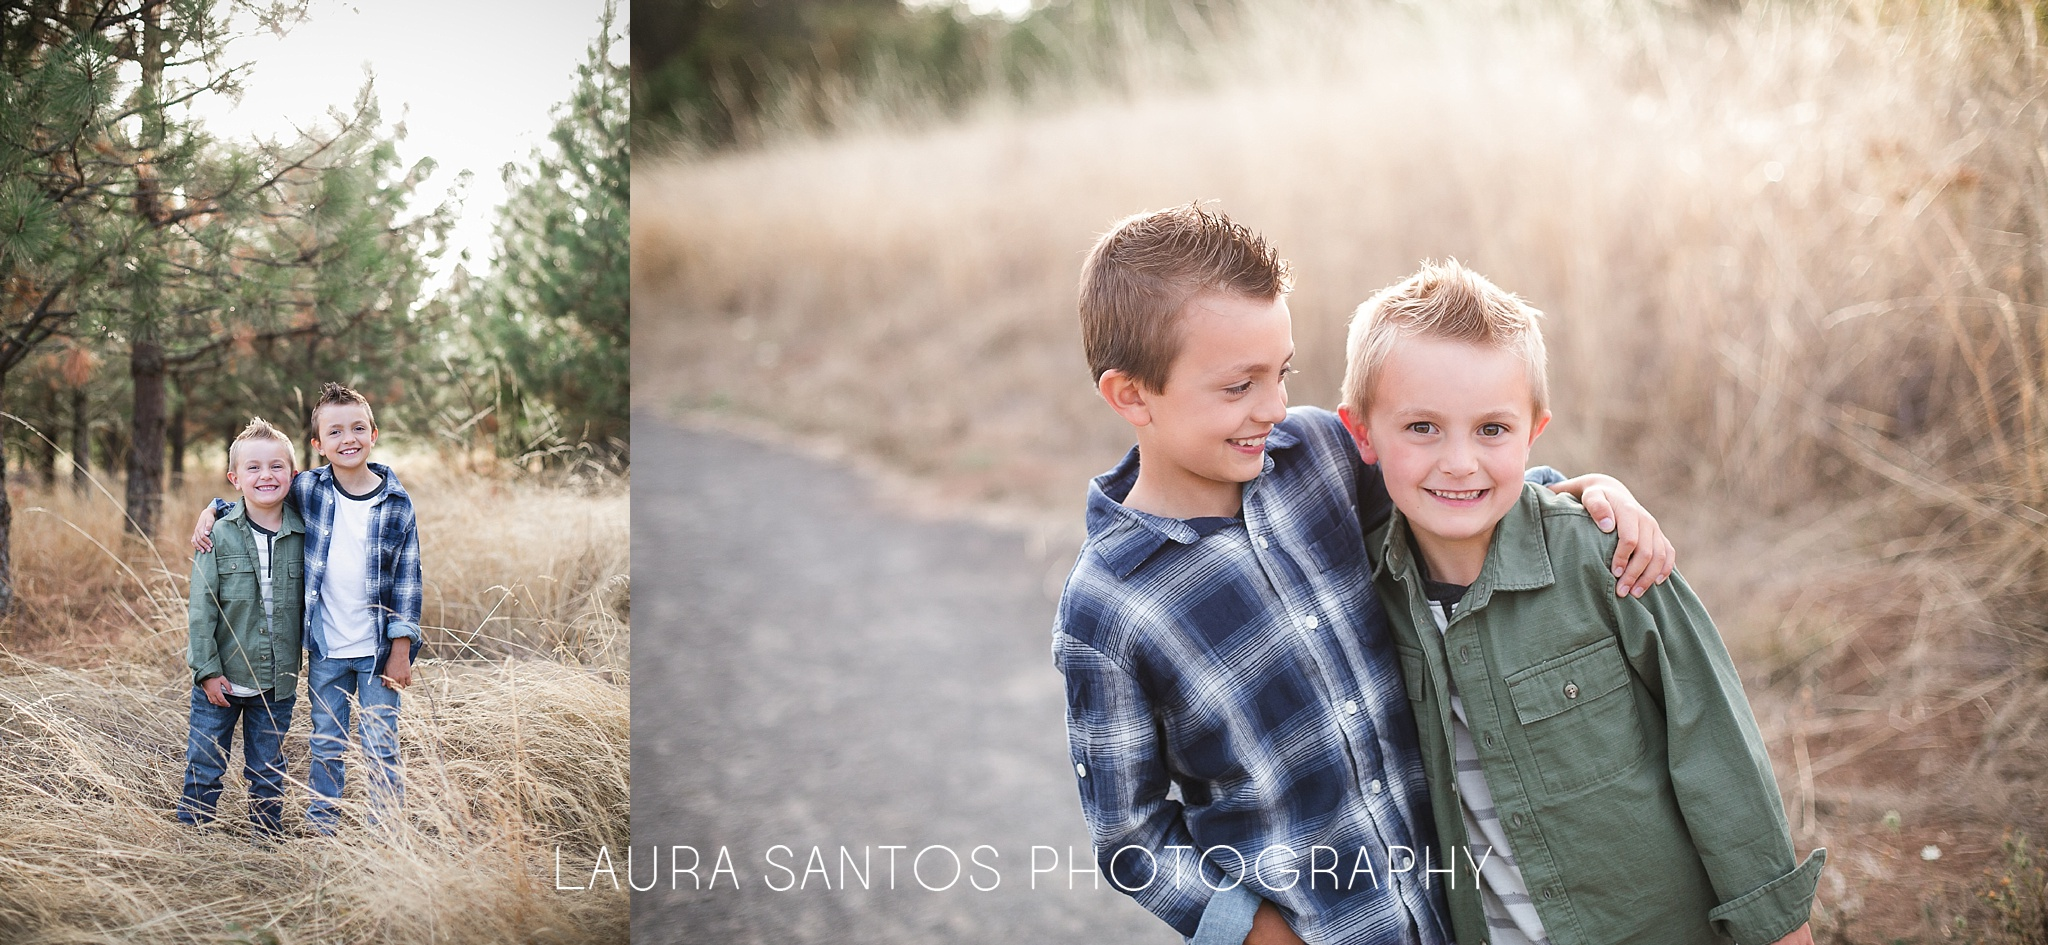 Laura Santos Photography Portland Oregon Family Photographer_0417.jpg